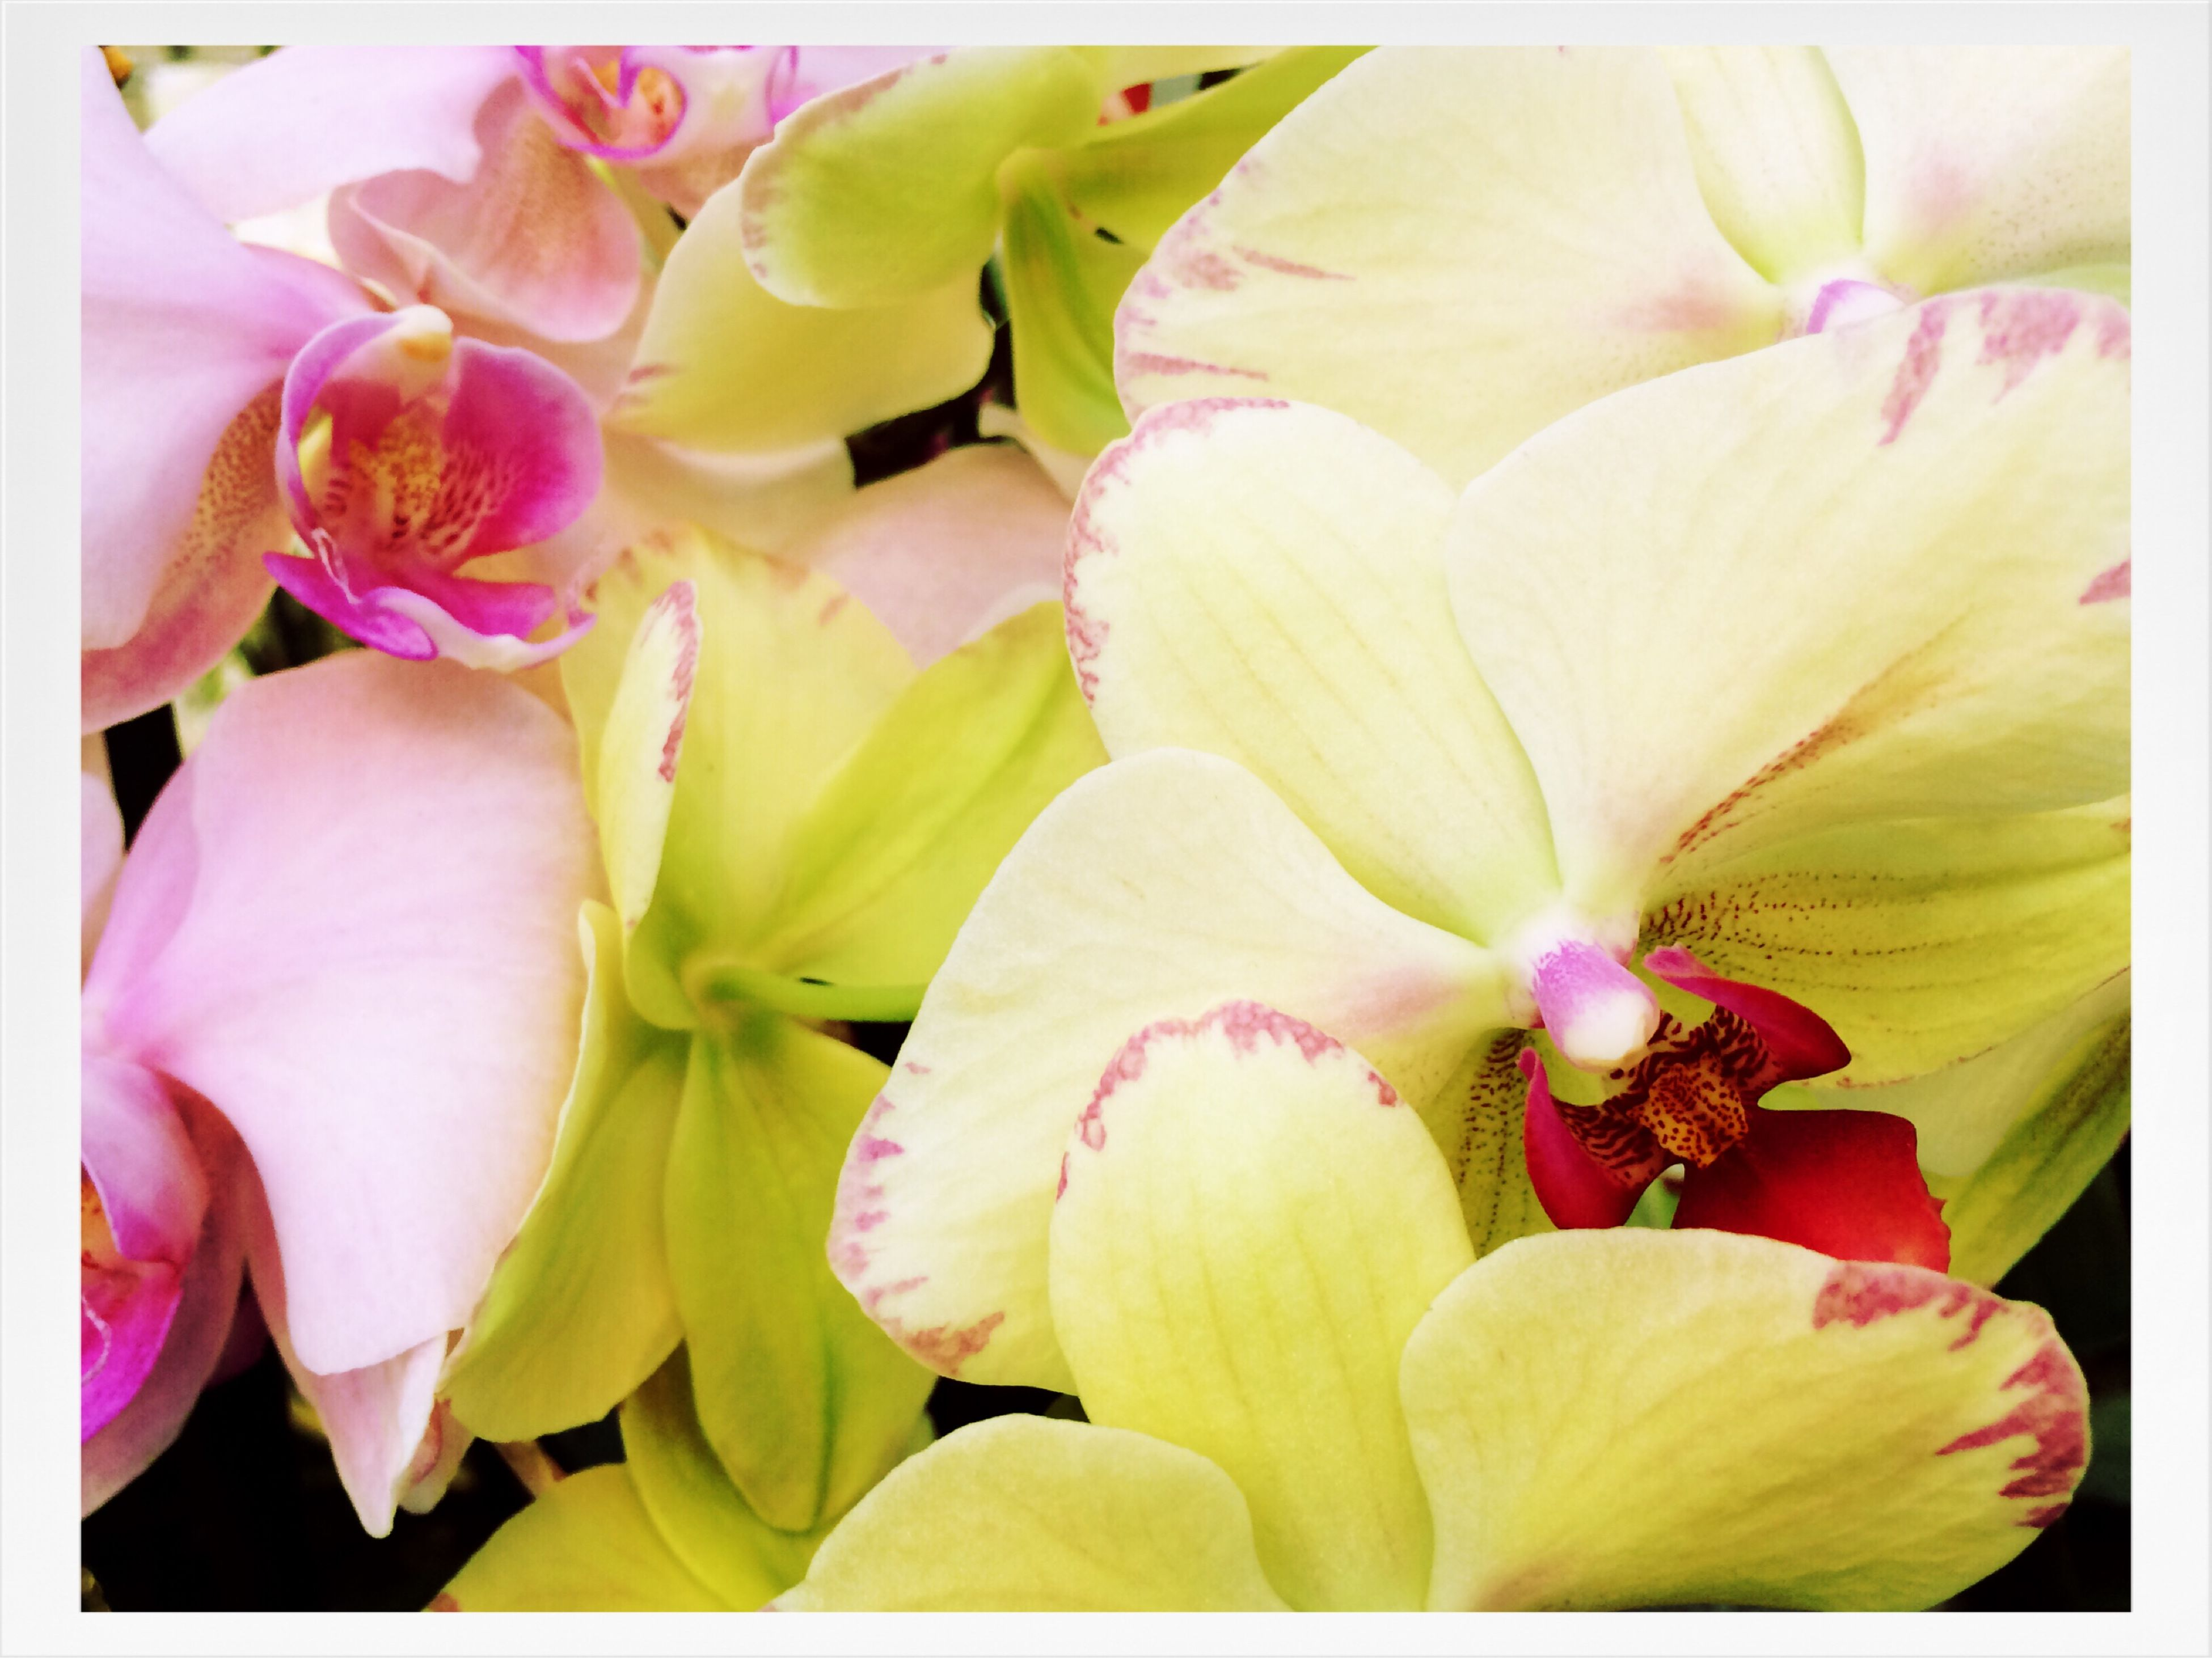 flower, petal, flower head, freshness, fragility, beauty in nature, growth, close-up, nature, pink color, blooming, stamen, orchid, blossom, pollen, plant, yellow, full frame, backgrounds, in bloom